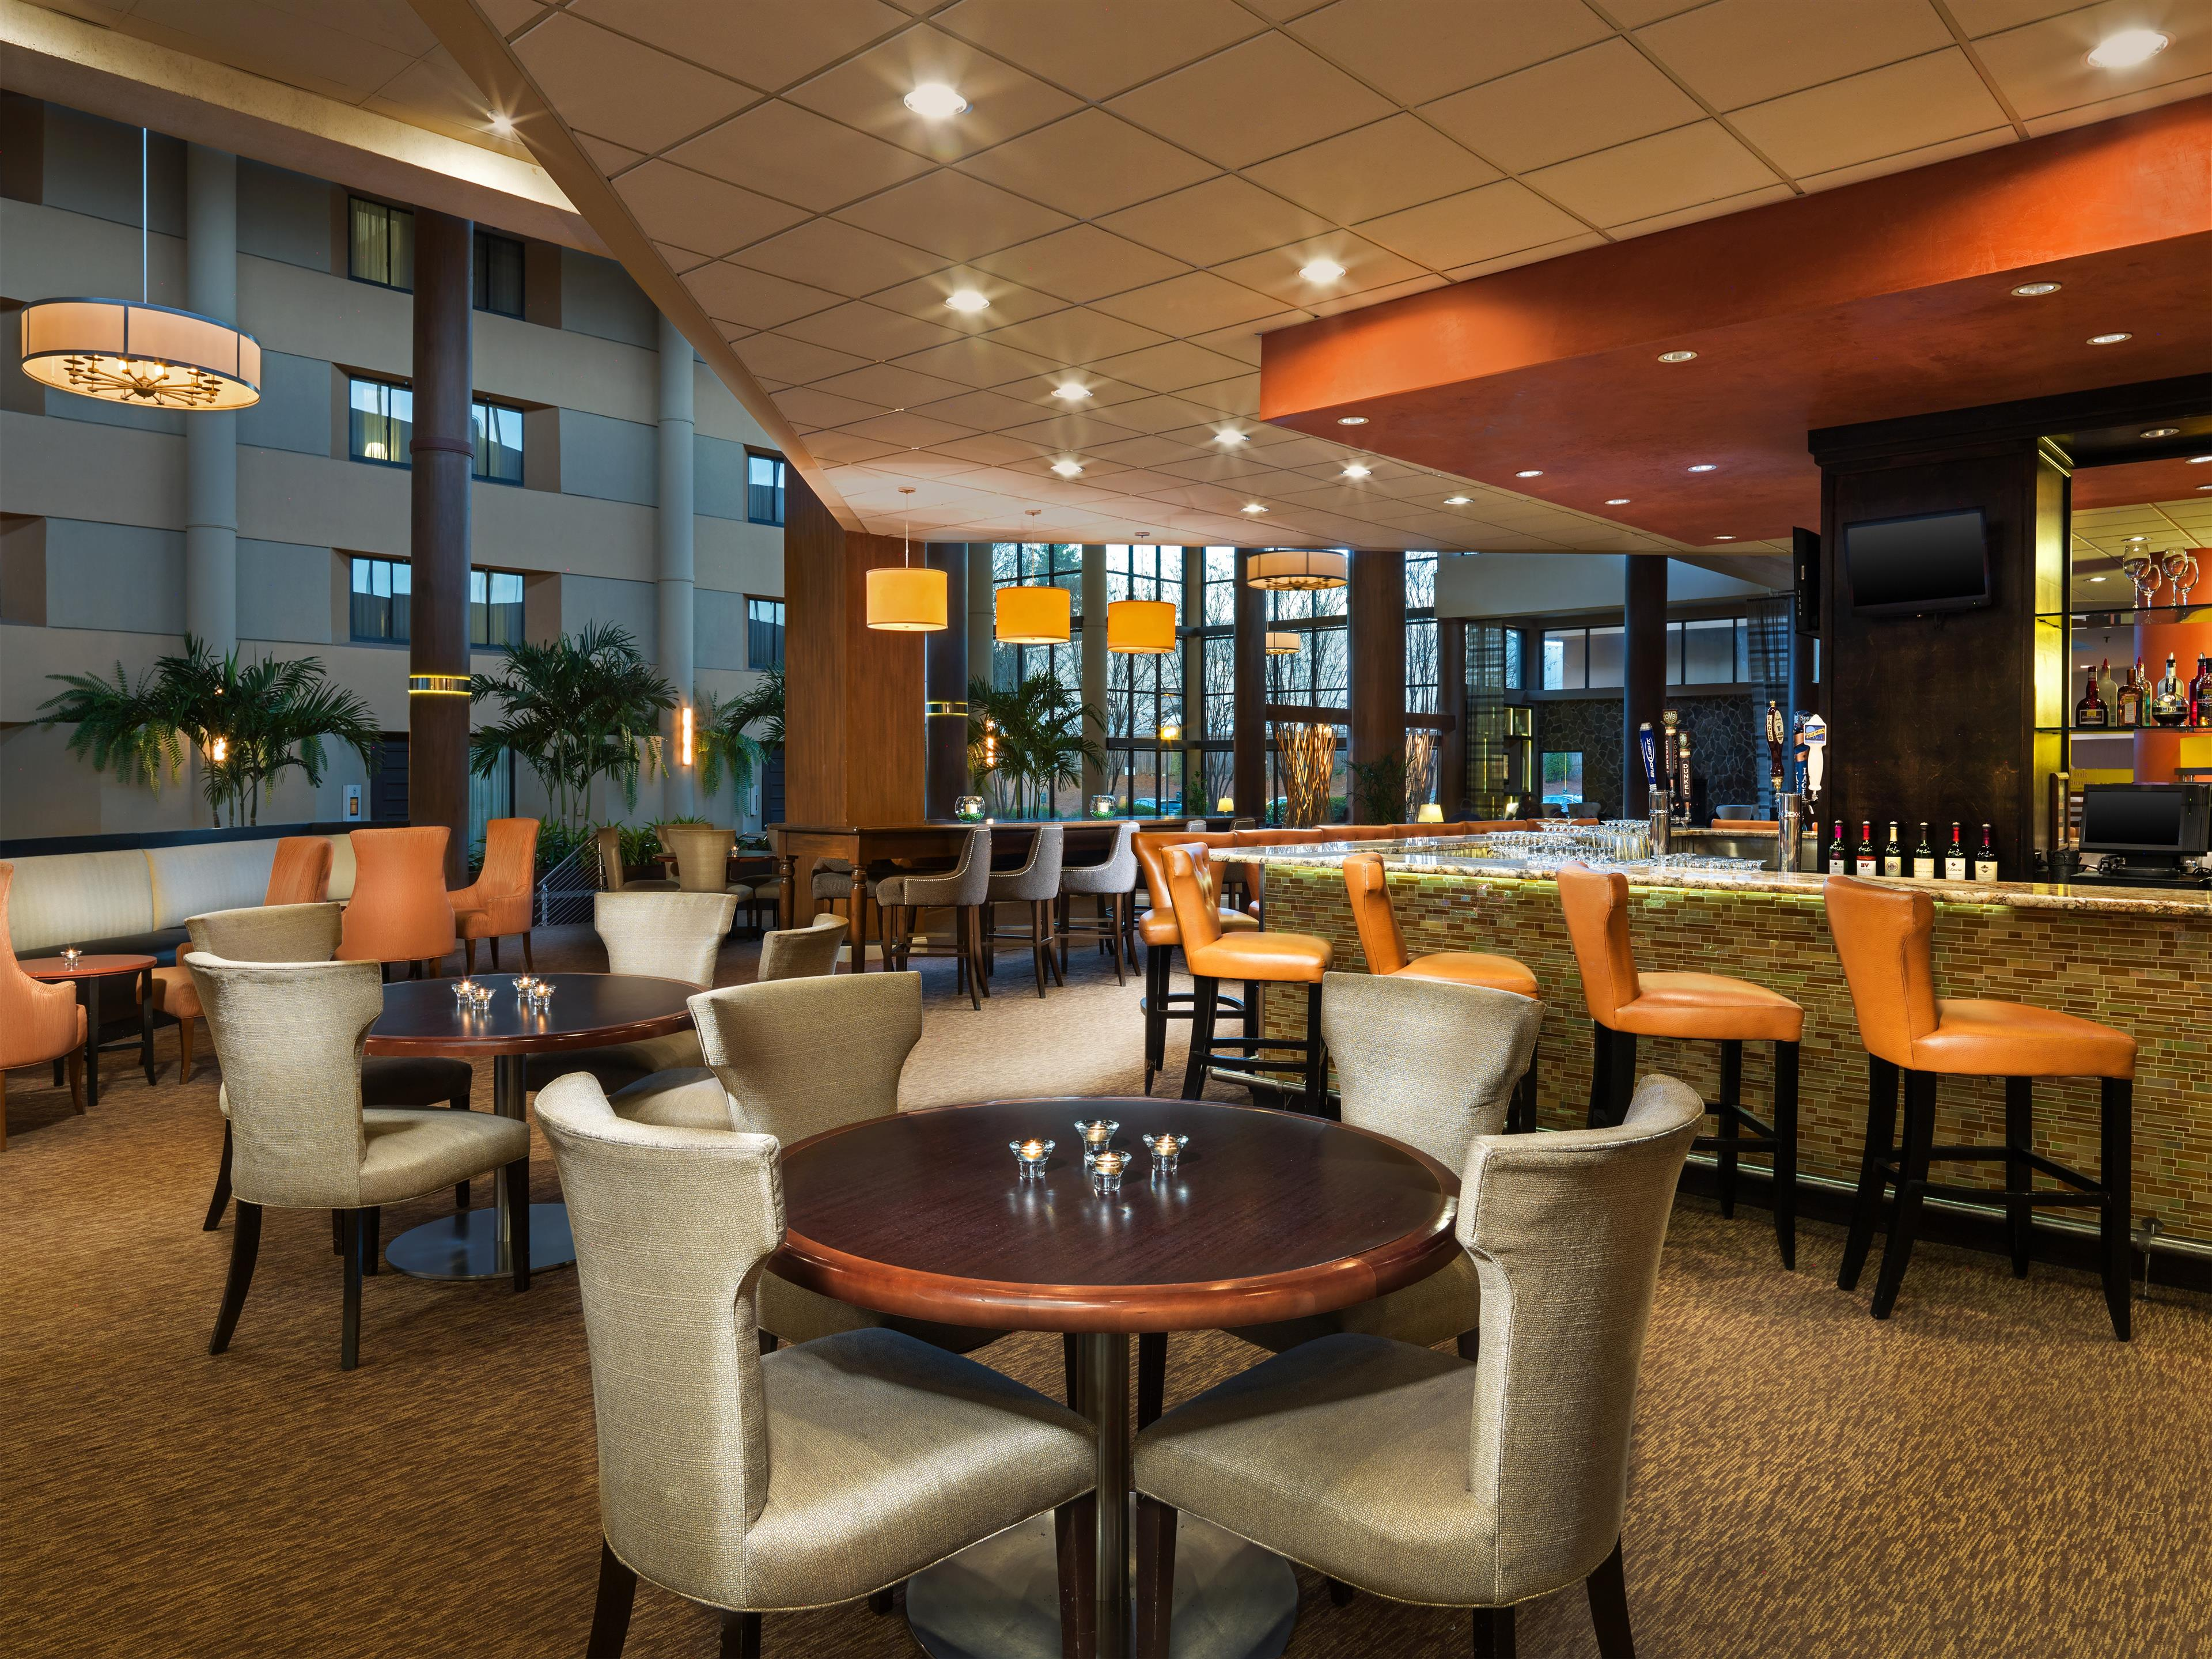 sheraton charlotte airport hotel in charlotte nc 28208. Black Bedroom Furniture Sets. Home Design Ideas